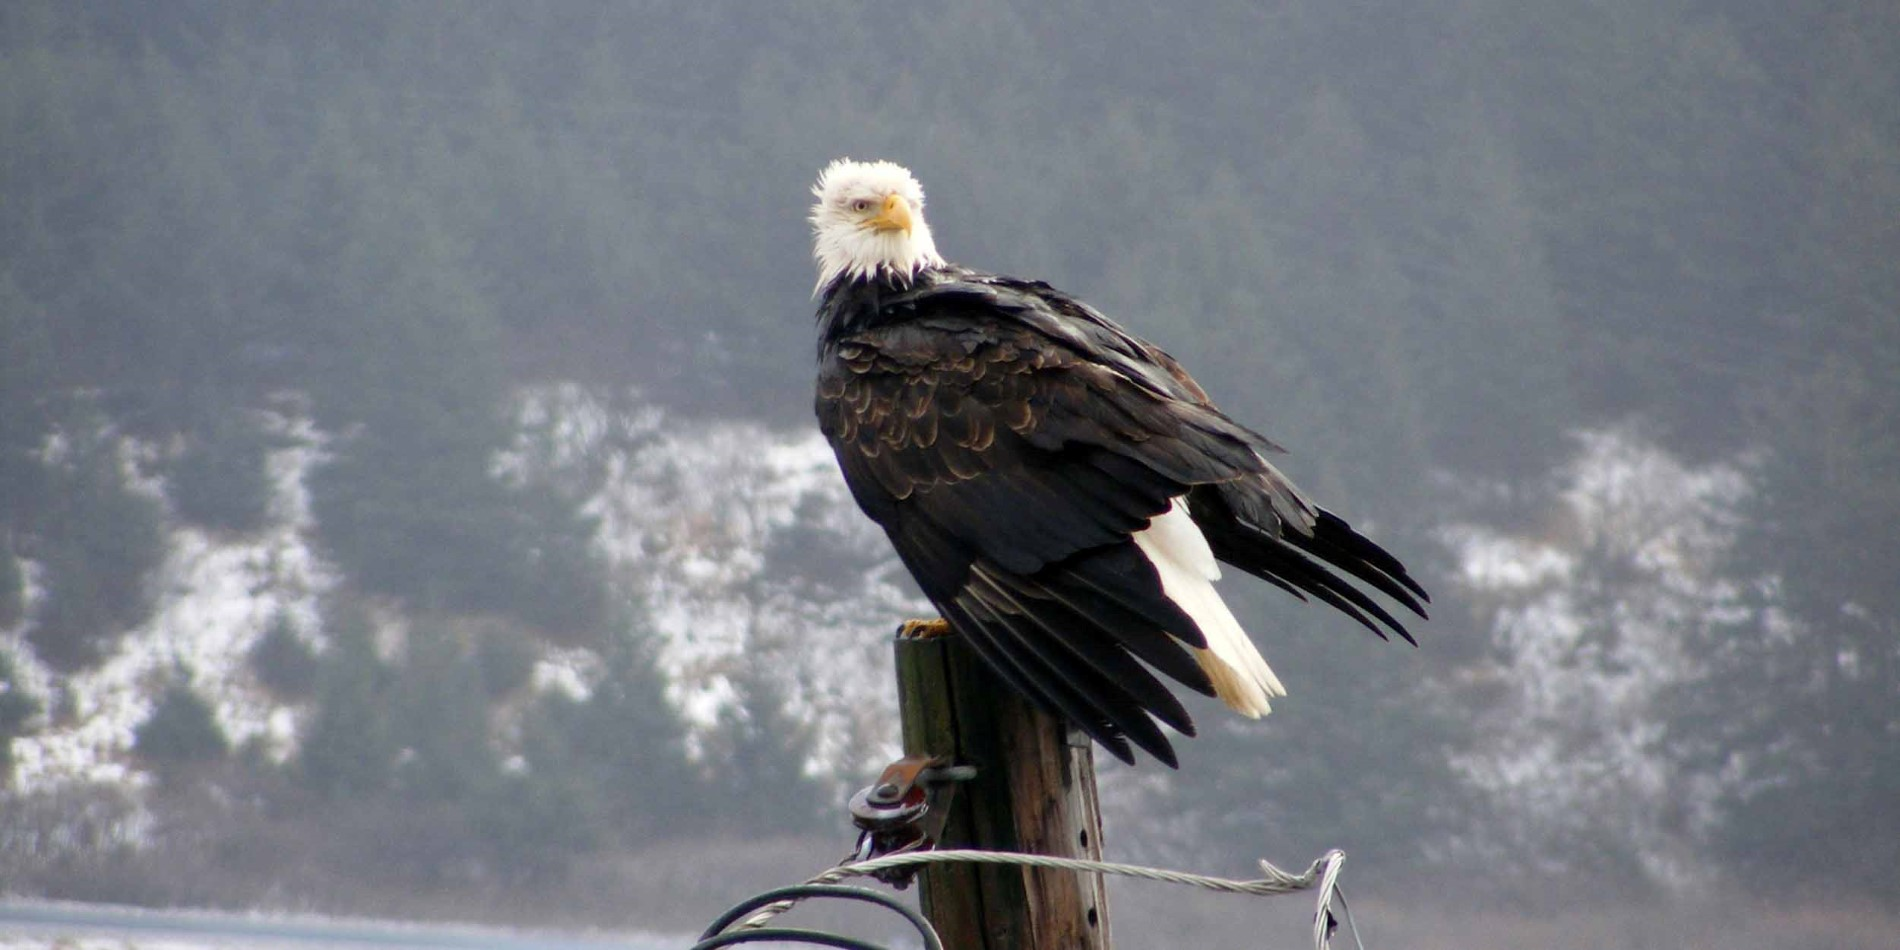 The Bald Eagle in Alaska